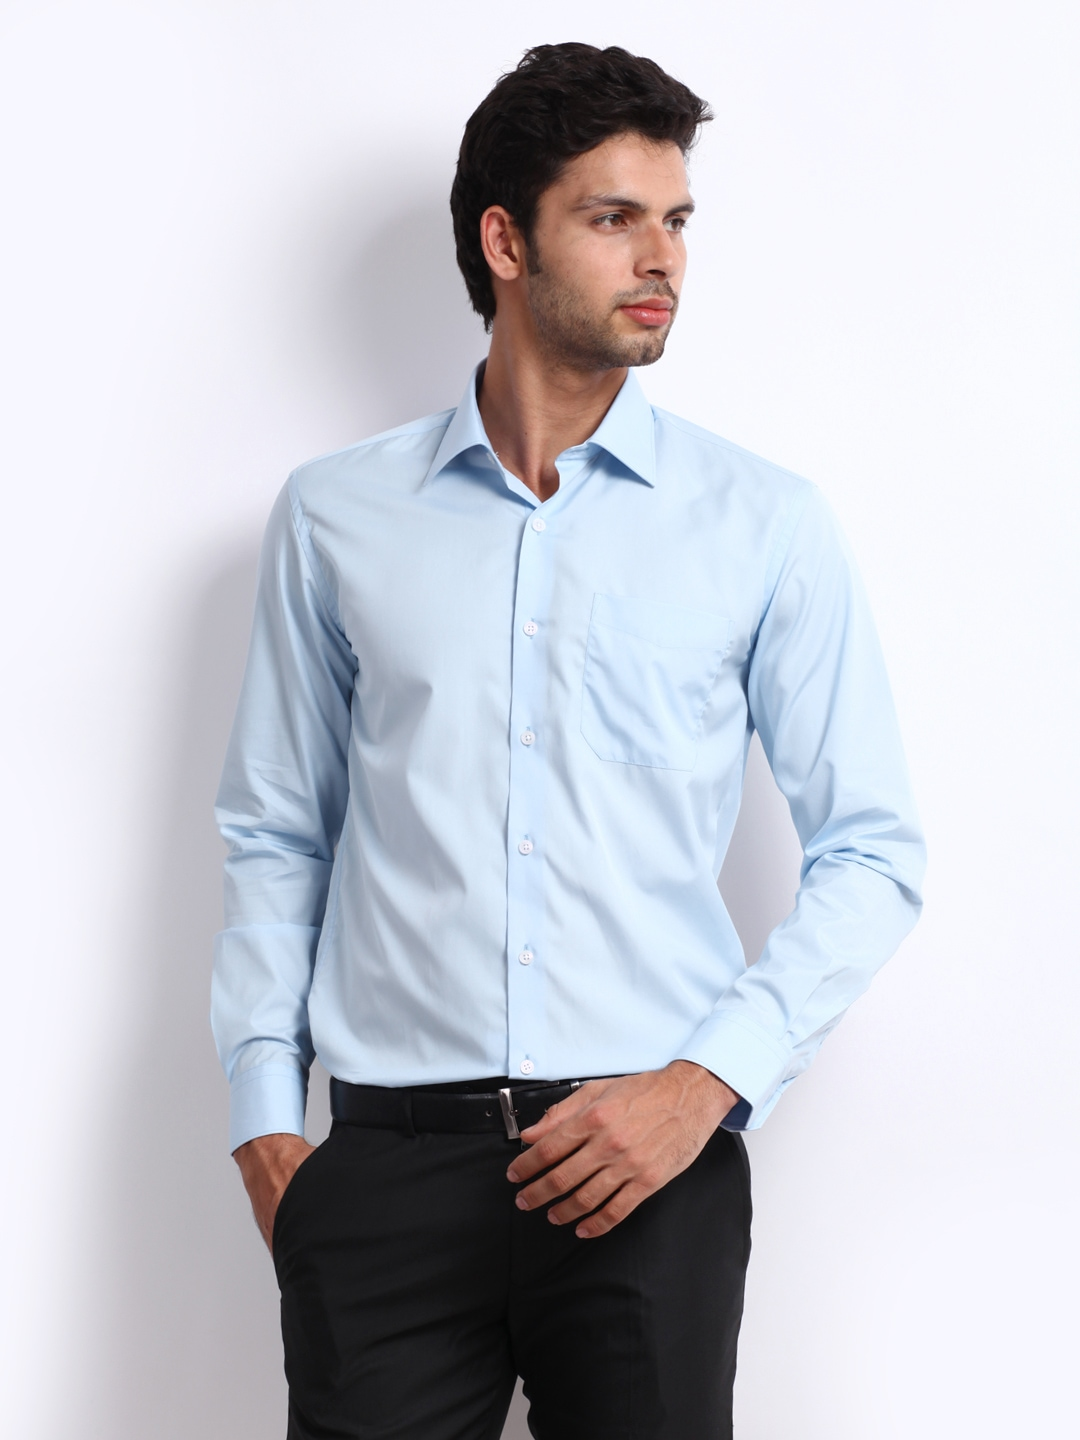 Men's Office Wear and Casual Dresses